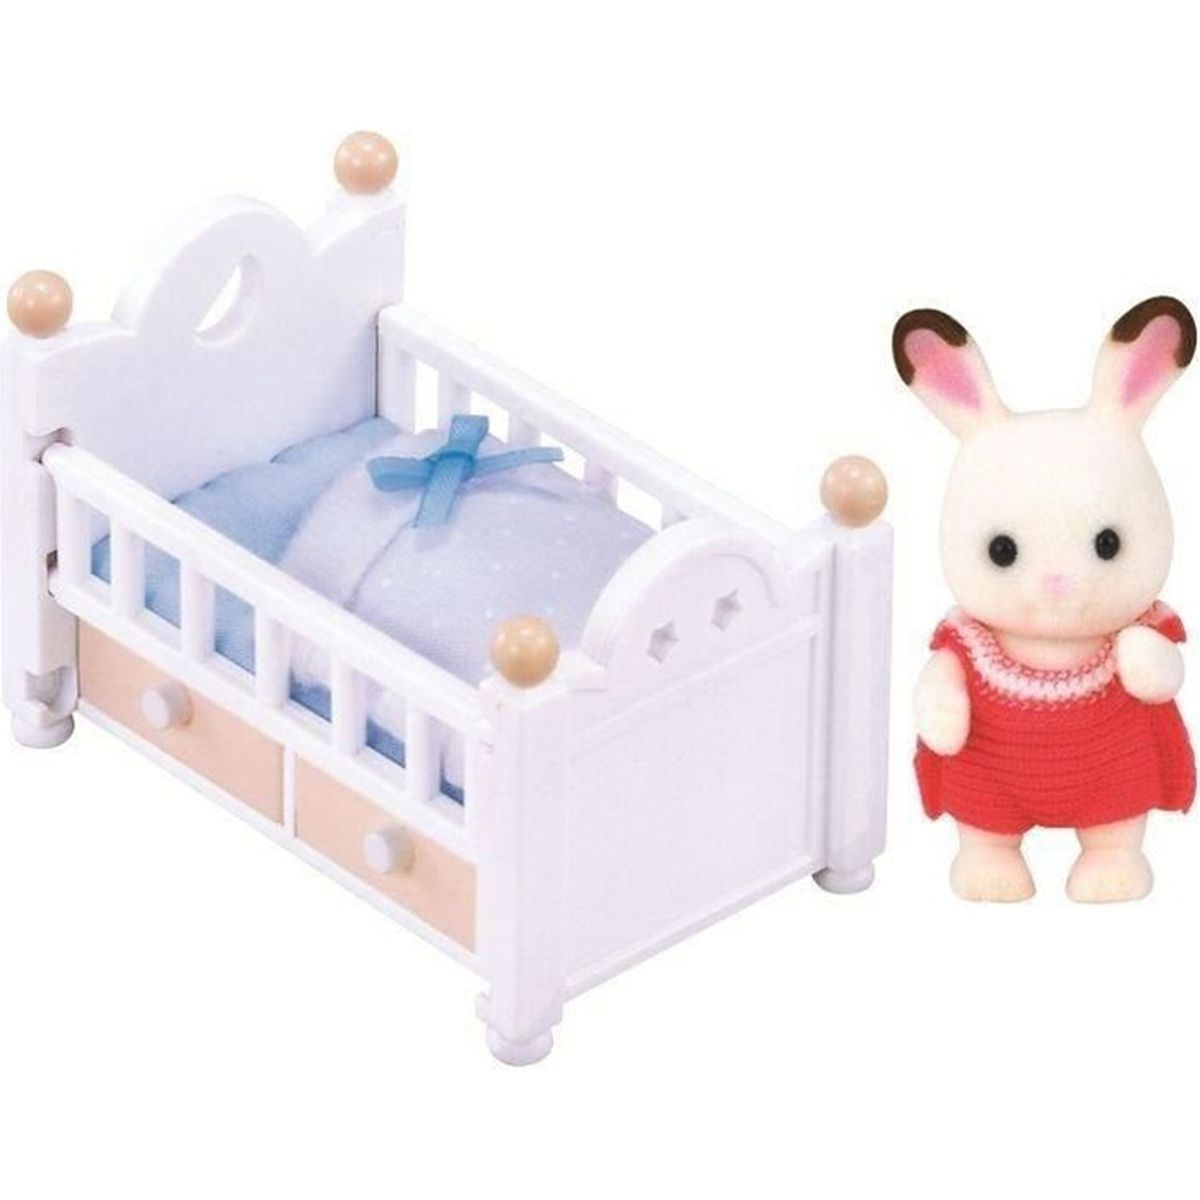 sylvanian families 2205 b b lapin chocolat lit achat vente figurine personnage cdiscount. Black Bedroom Furniture Sets. Home Design Ideas